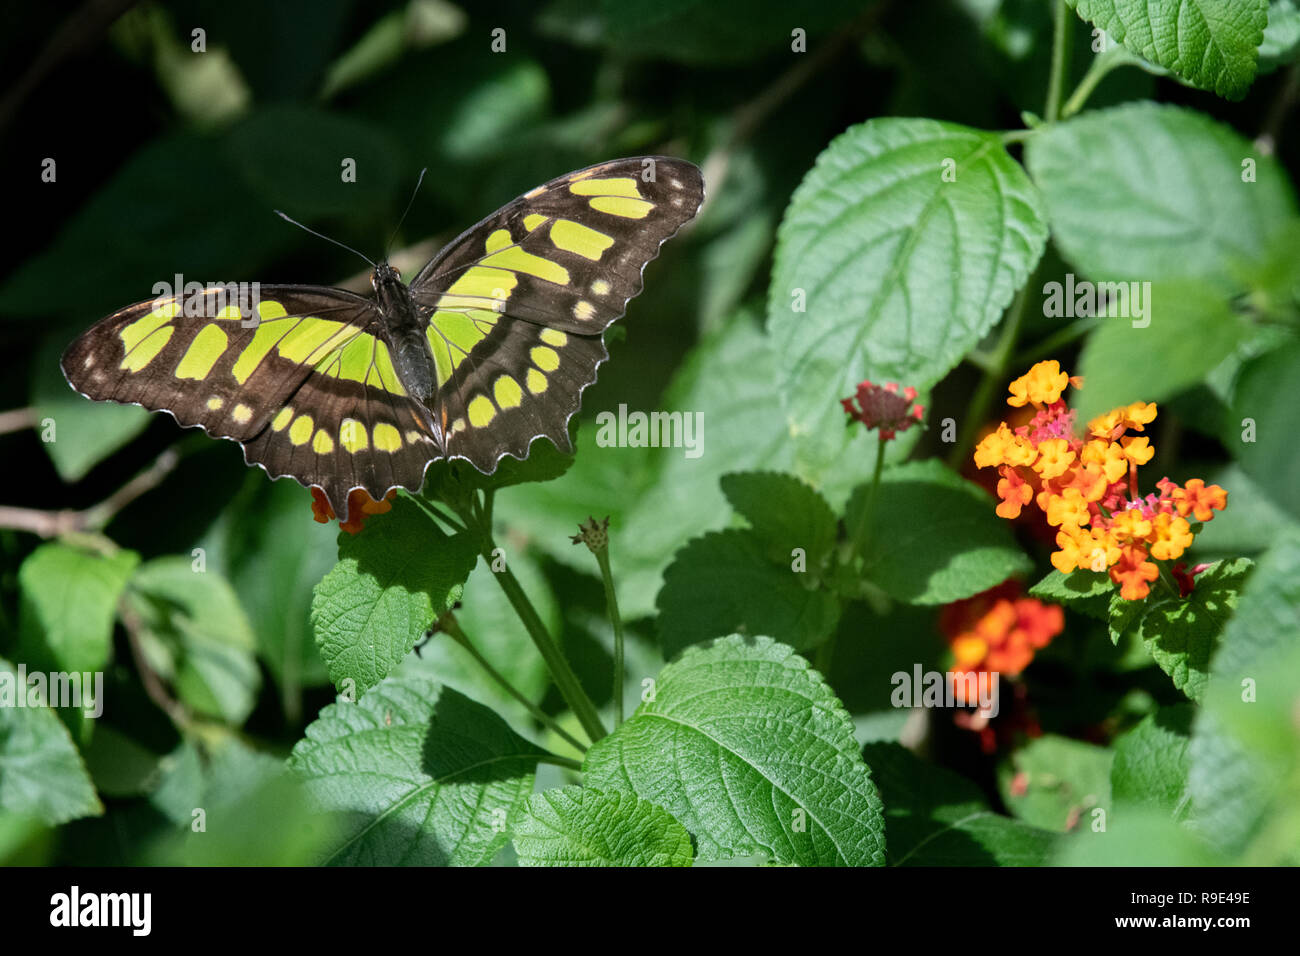 Malachite Butterfly - Siproeta stelenes butterfly - a Malachite Butterfly rests on African butterfly weed flowers in a butterfly exhibit in Aruba - Stock Image